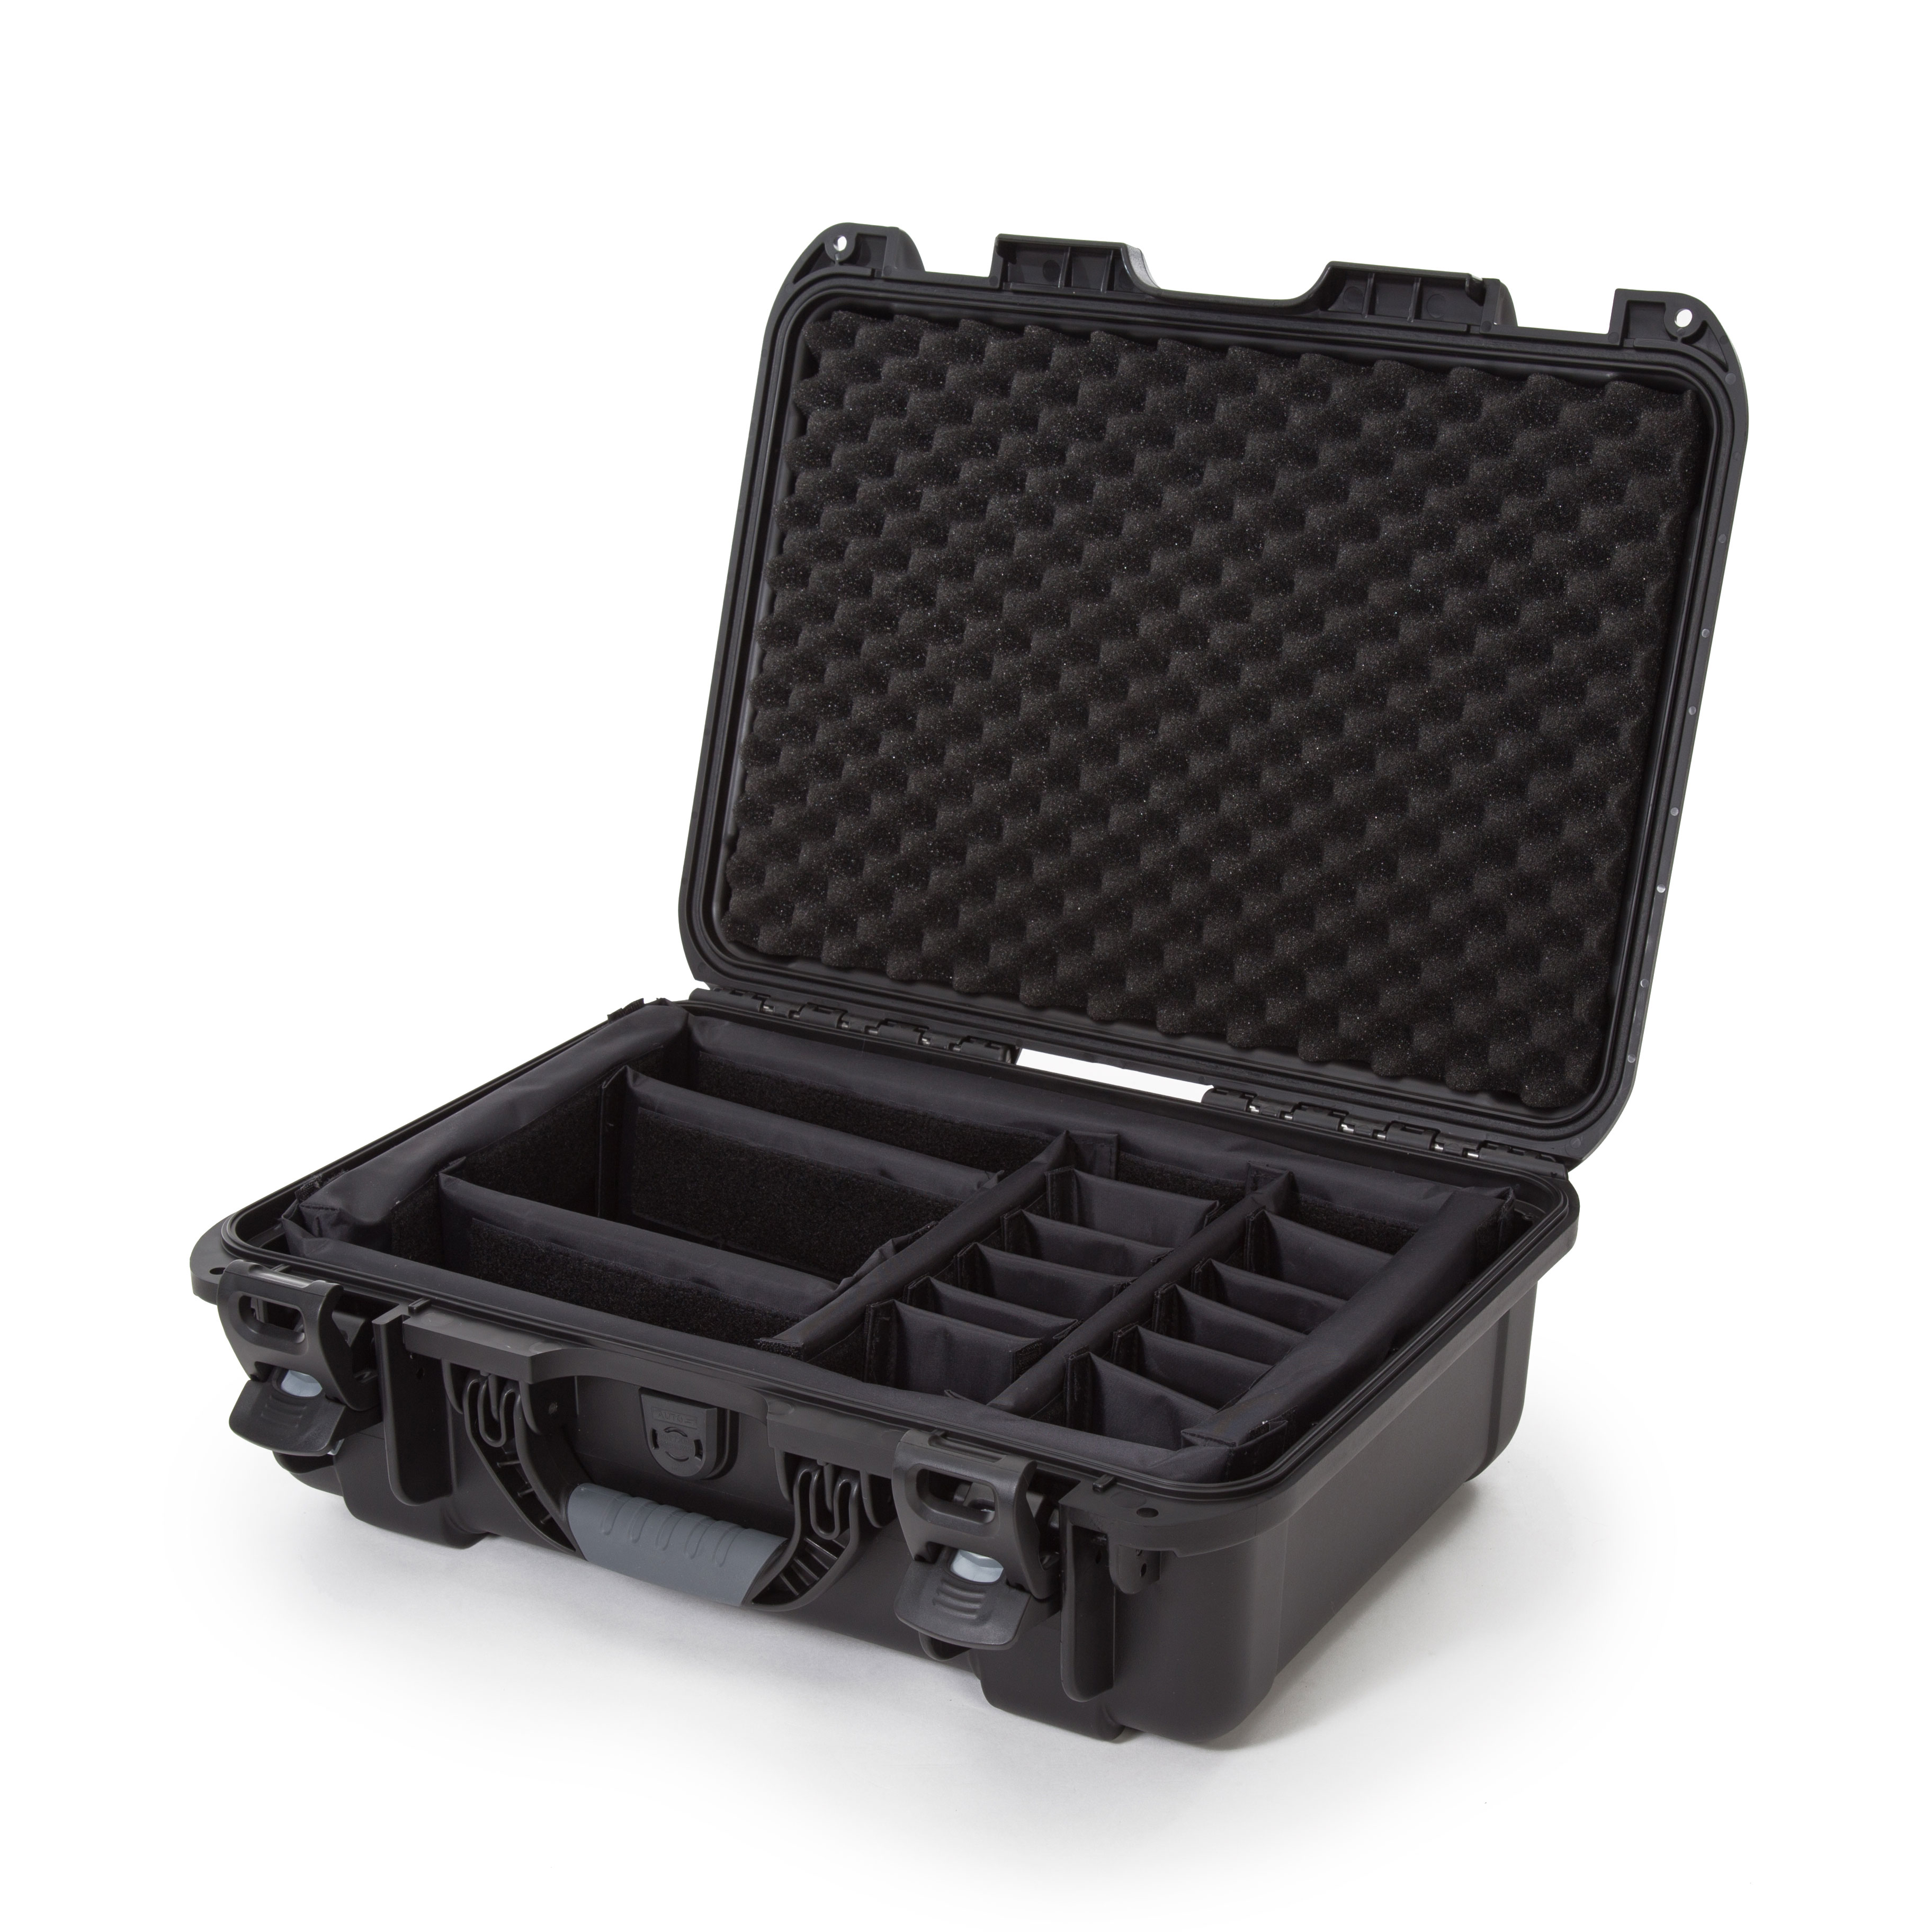 Silver Nanuk 925 Waterproof Hard Case with Padded Dividers